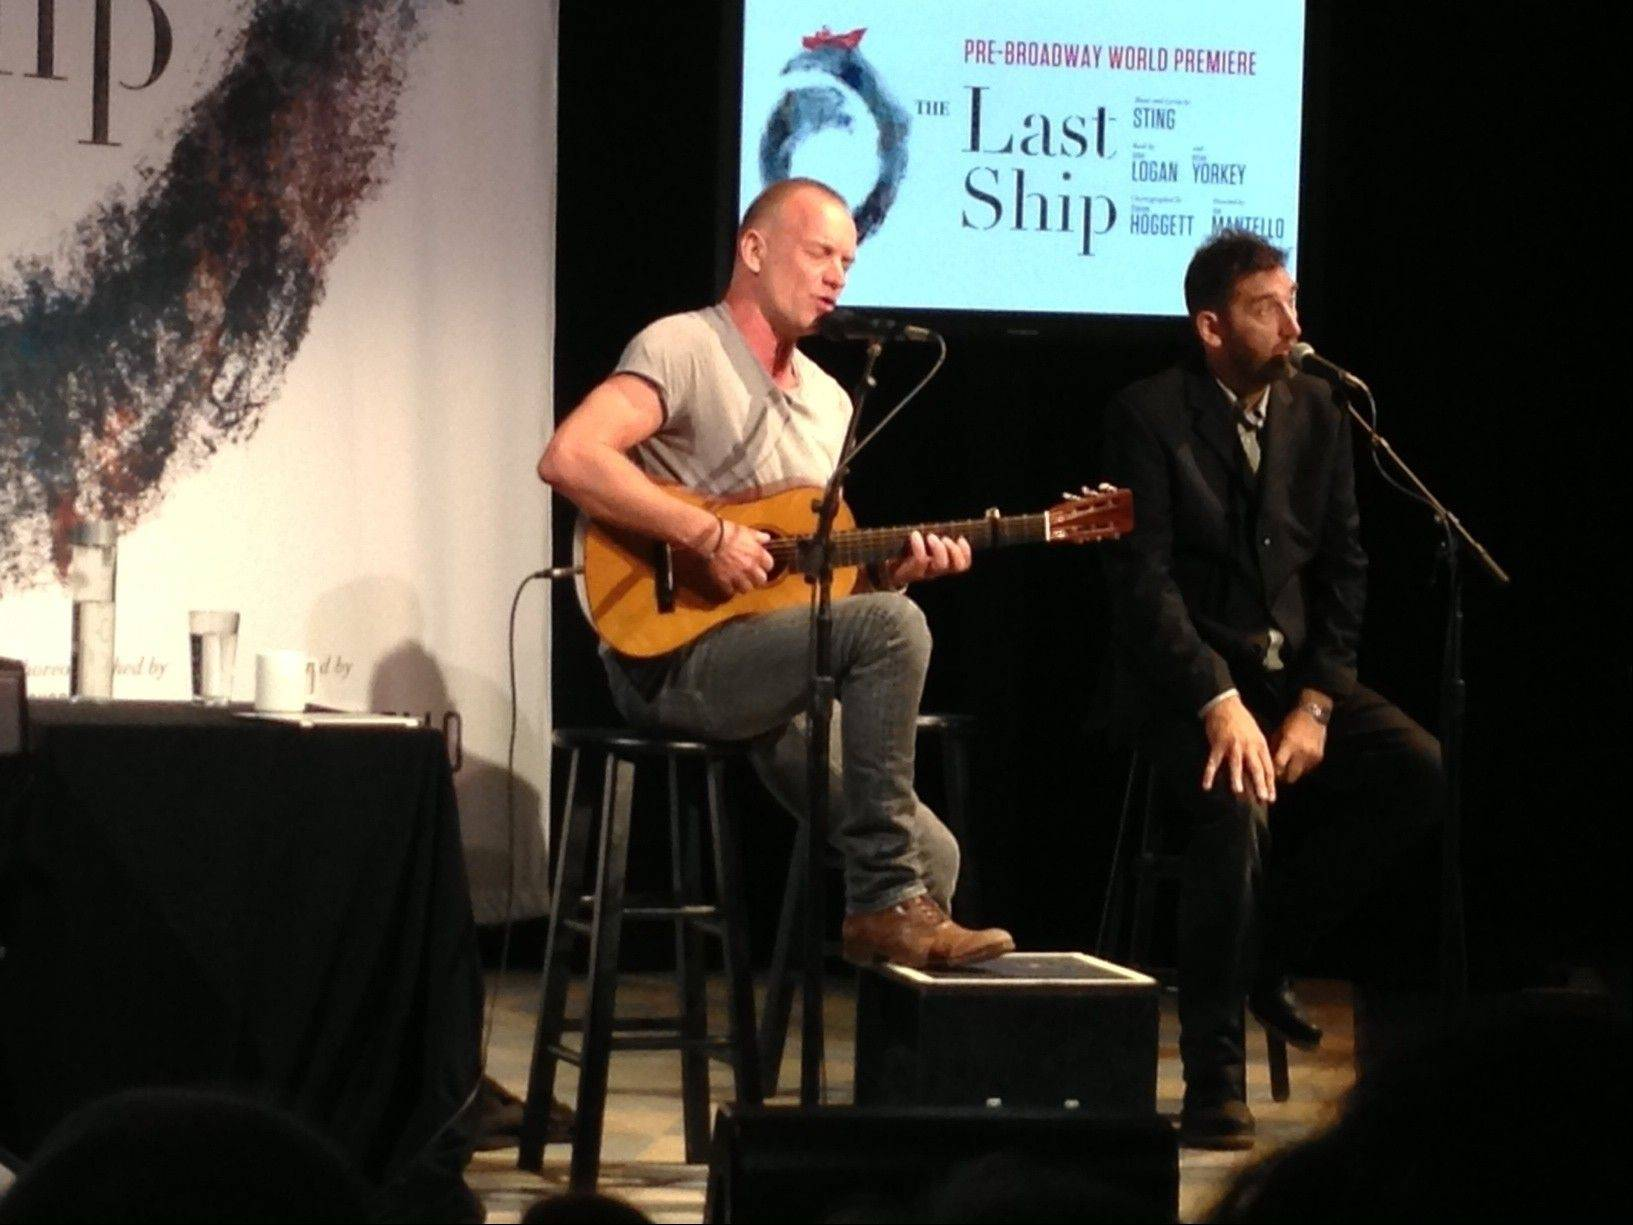 "Sting and actor Jimmy Nail performed songs from ""The Last Ship"" at the Broadway Playhouse at Water Tower Place in Chicago Friday. The two were promoting Sting's album of the same name and the fact that Chicago will host the pre-Broadway world premiere of ""The Last Ship"" at the Bank of America Theatre from June 10 to July 13, 2014."